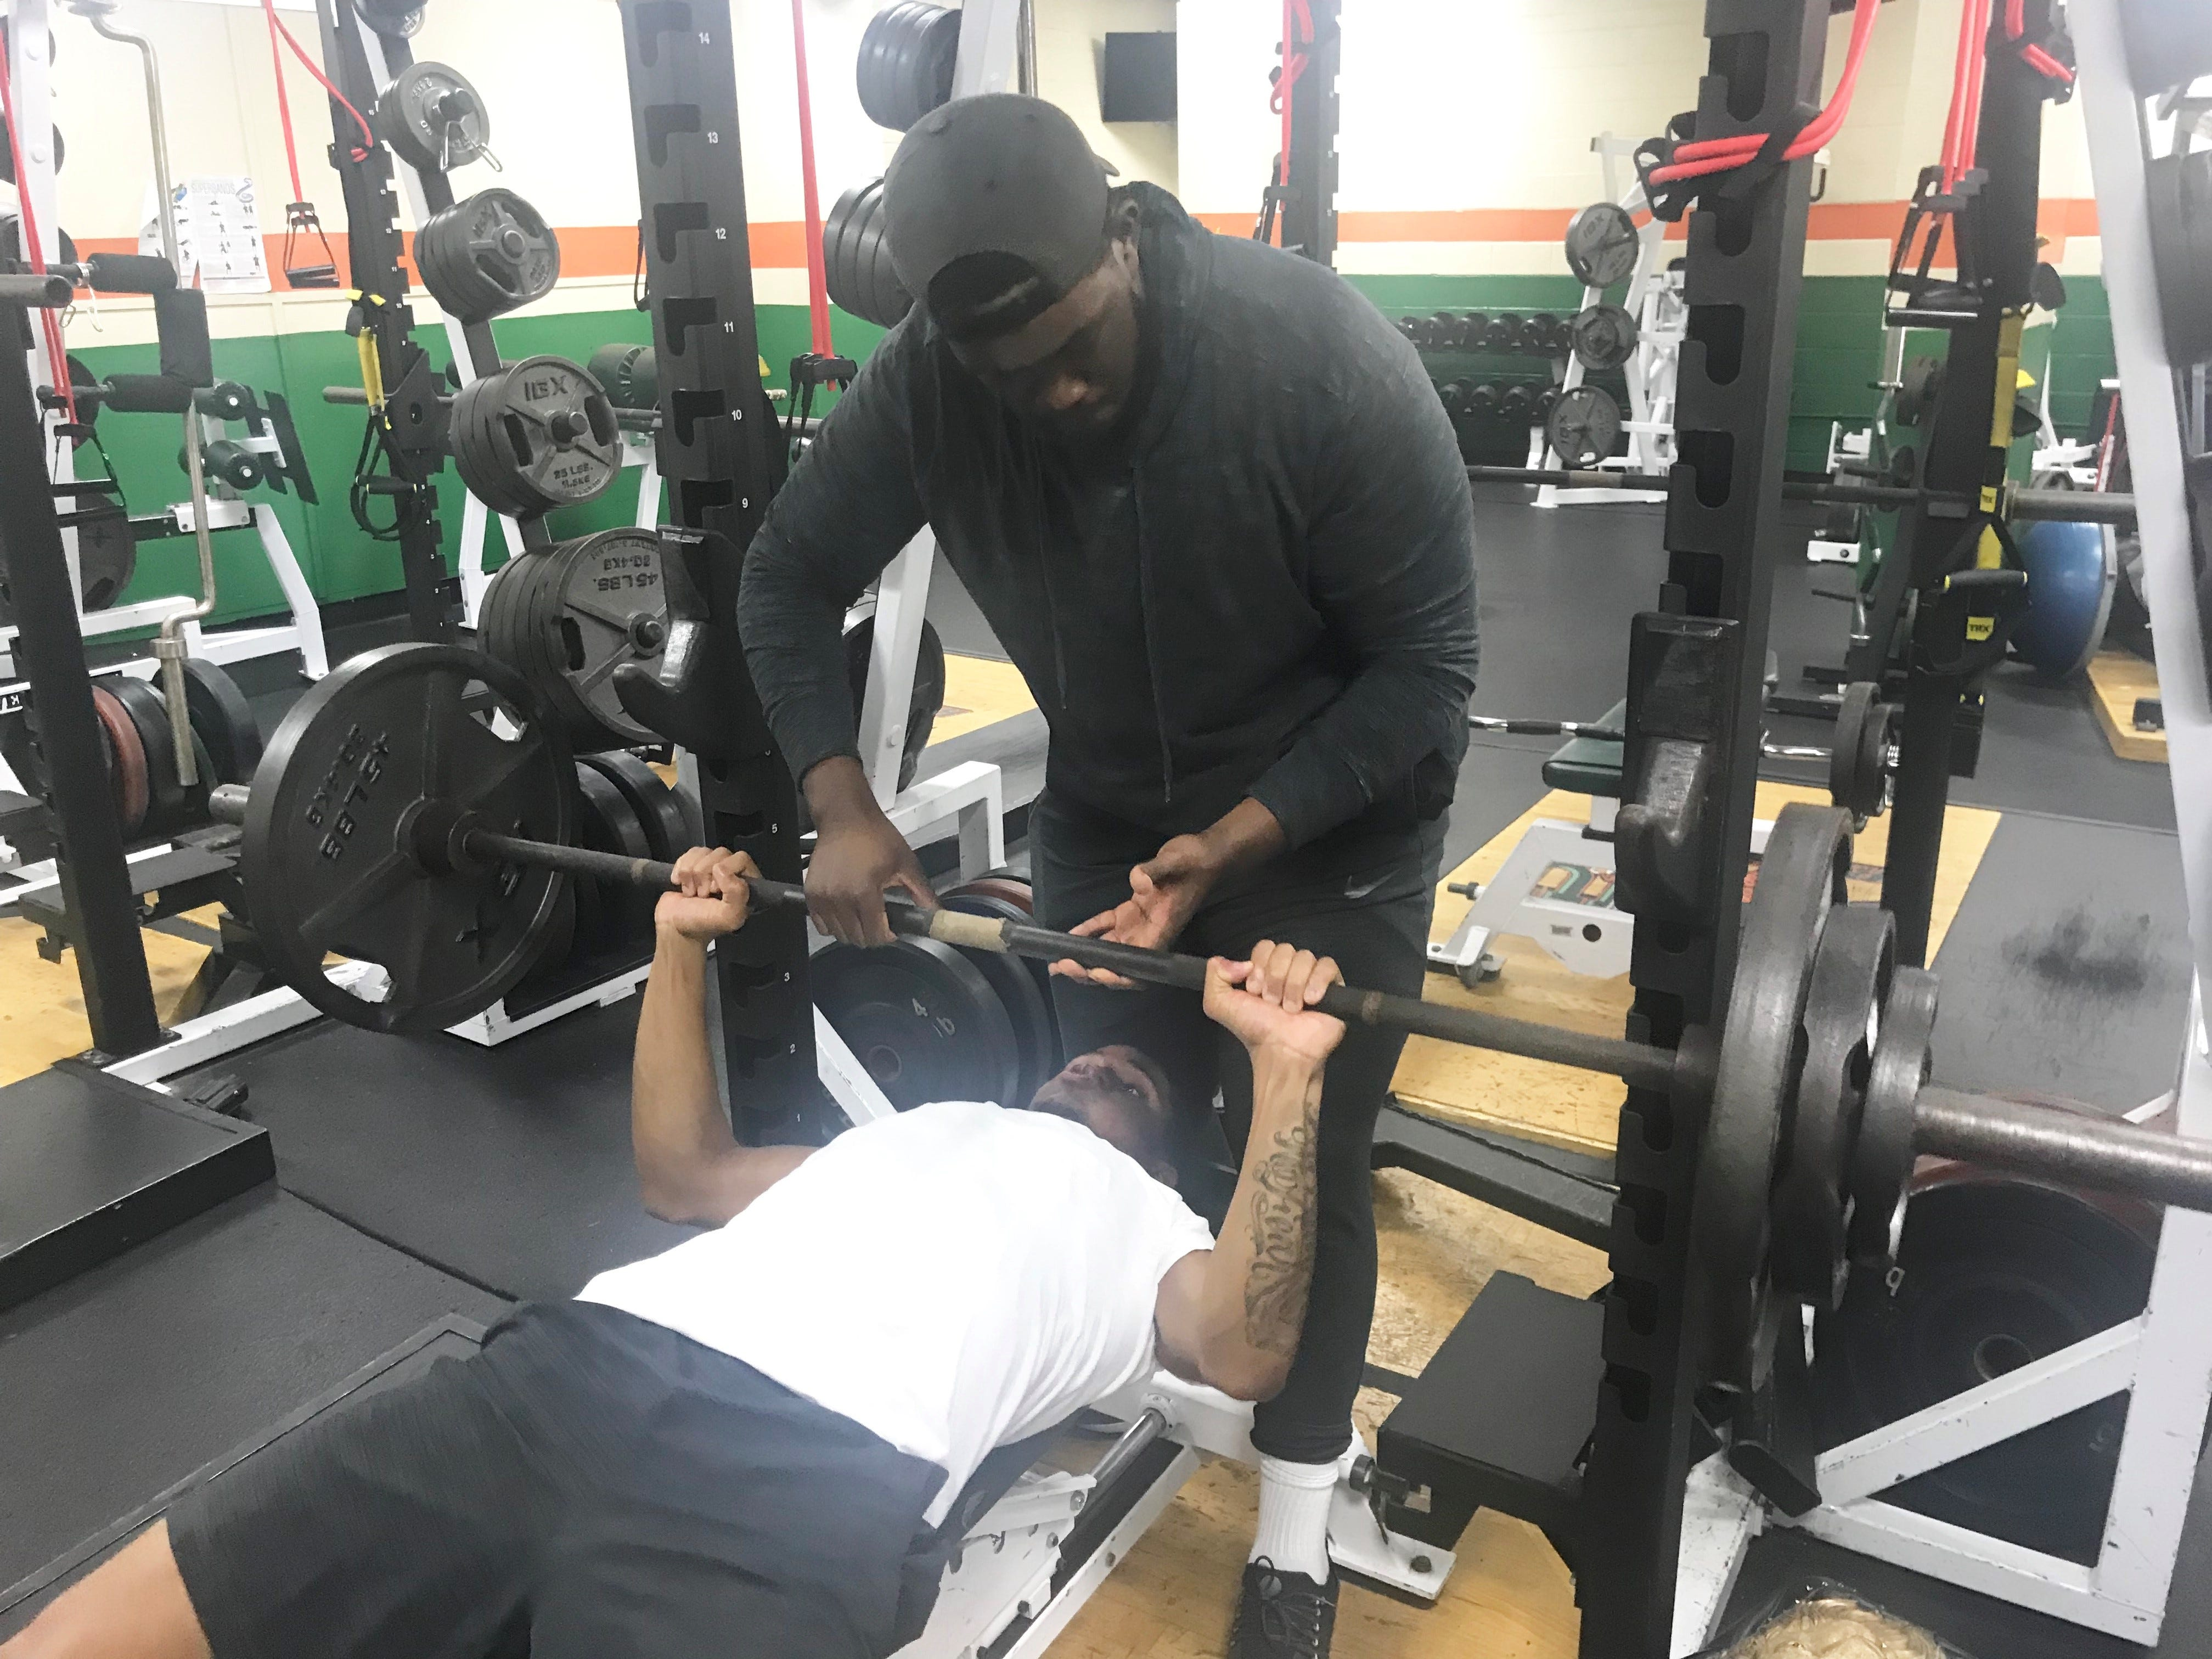 FAMU assistant strength and conditioning coach Marcus Johnson spots defensive back Herman Jackson on a bench press.